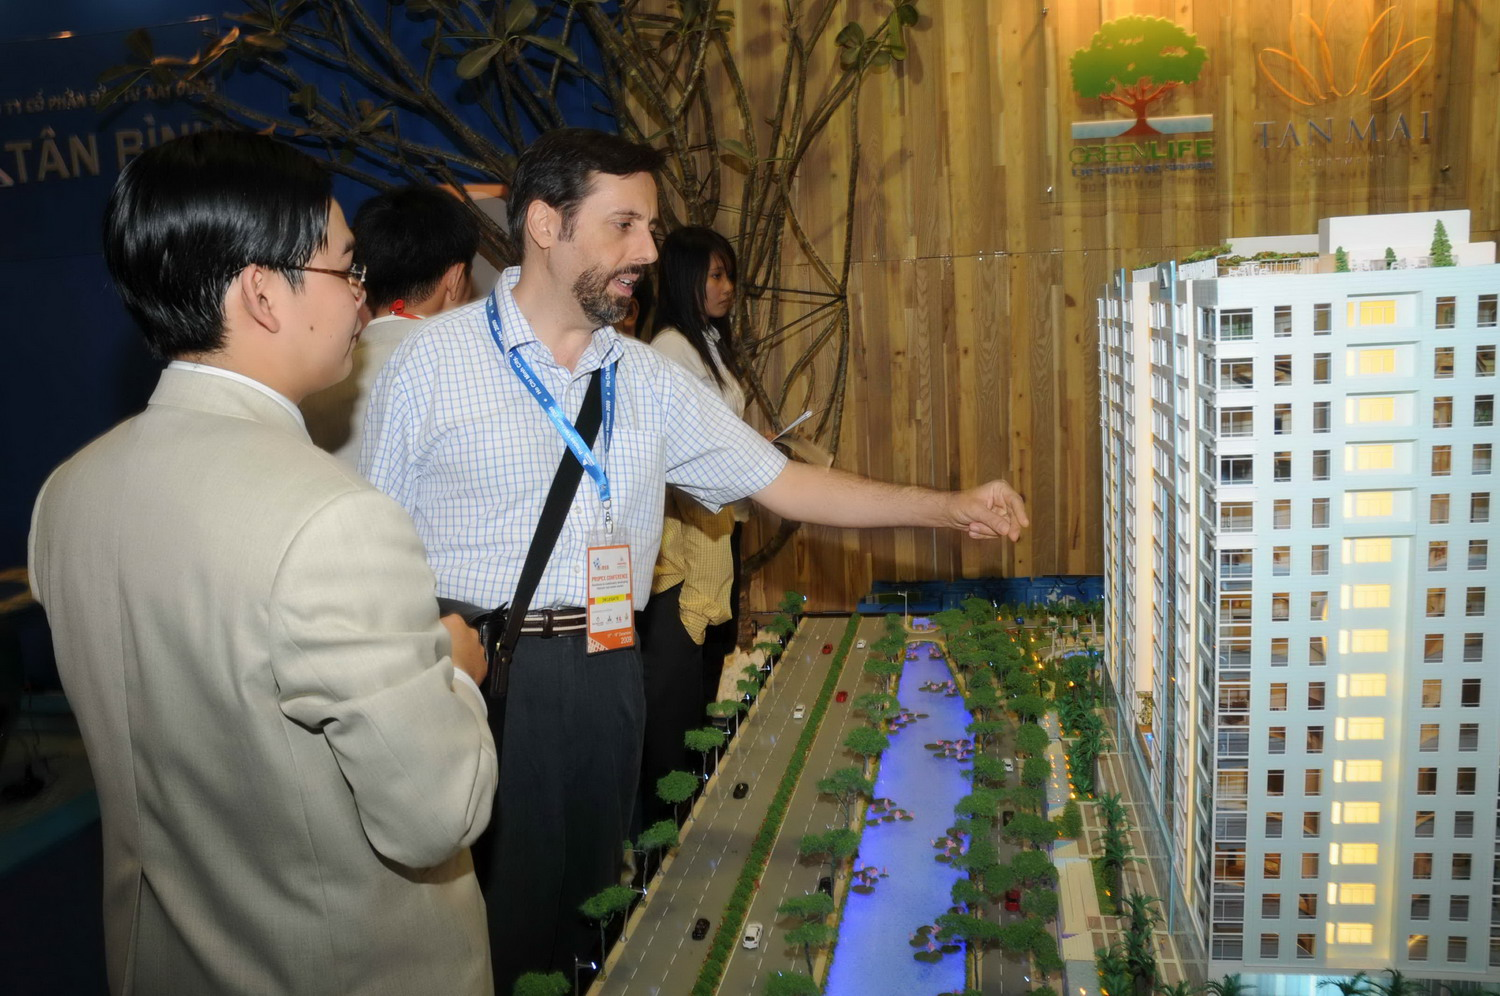 It's still hard for foreigners, Viet kieu to buy houses in Vietnam